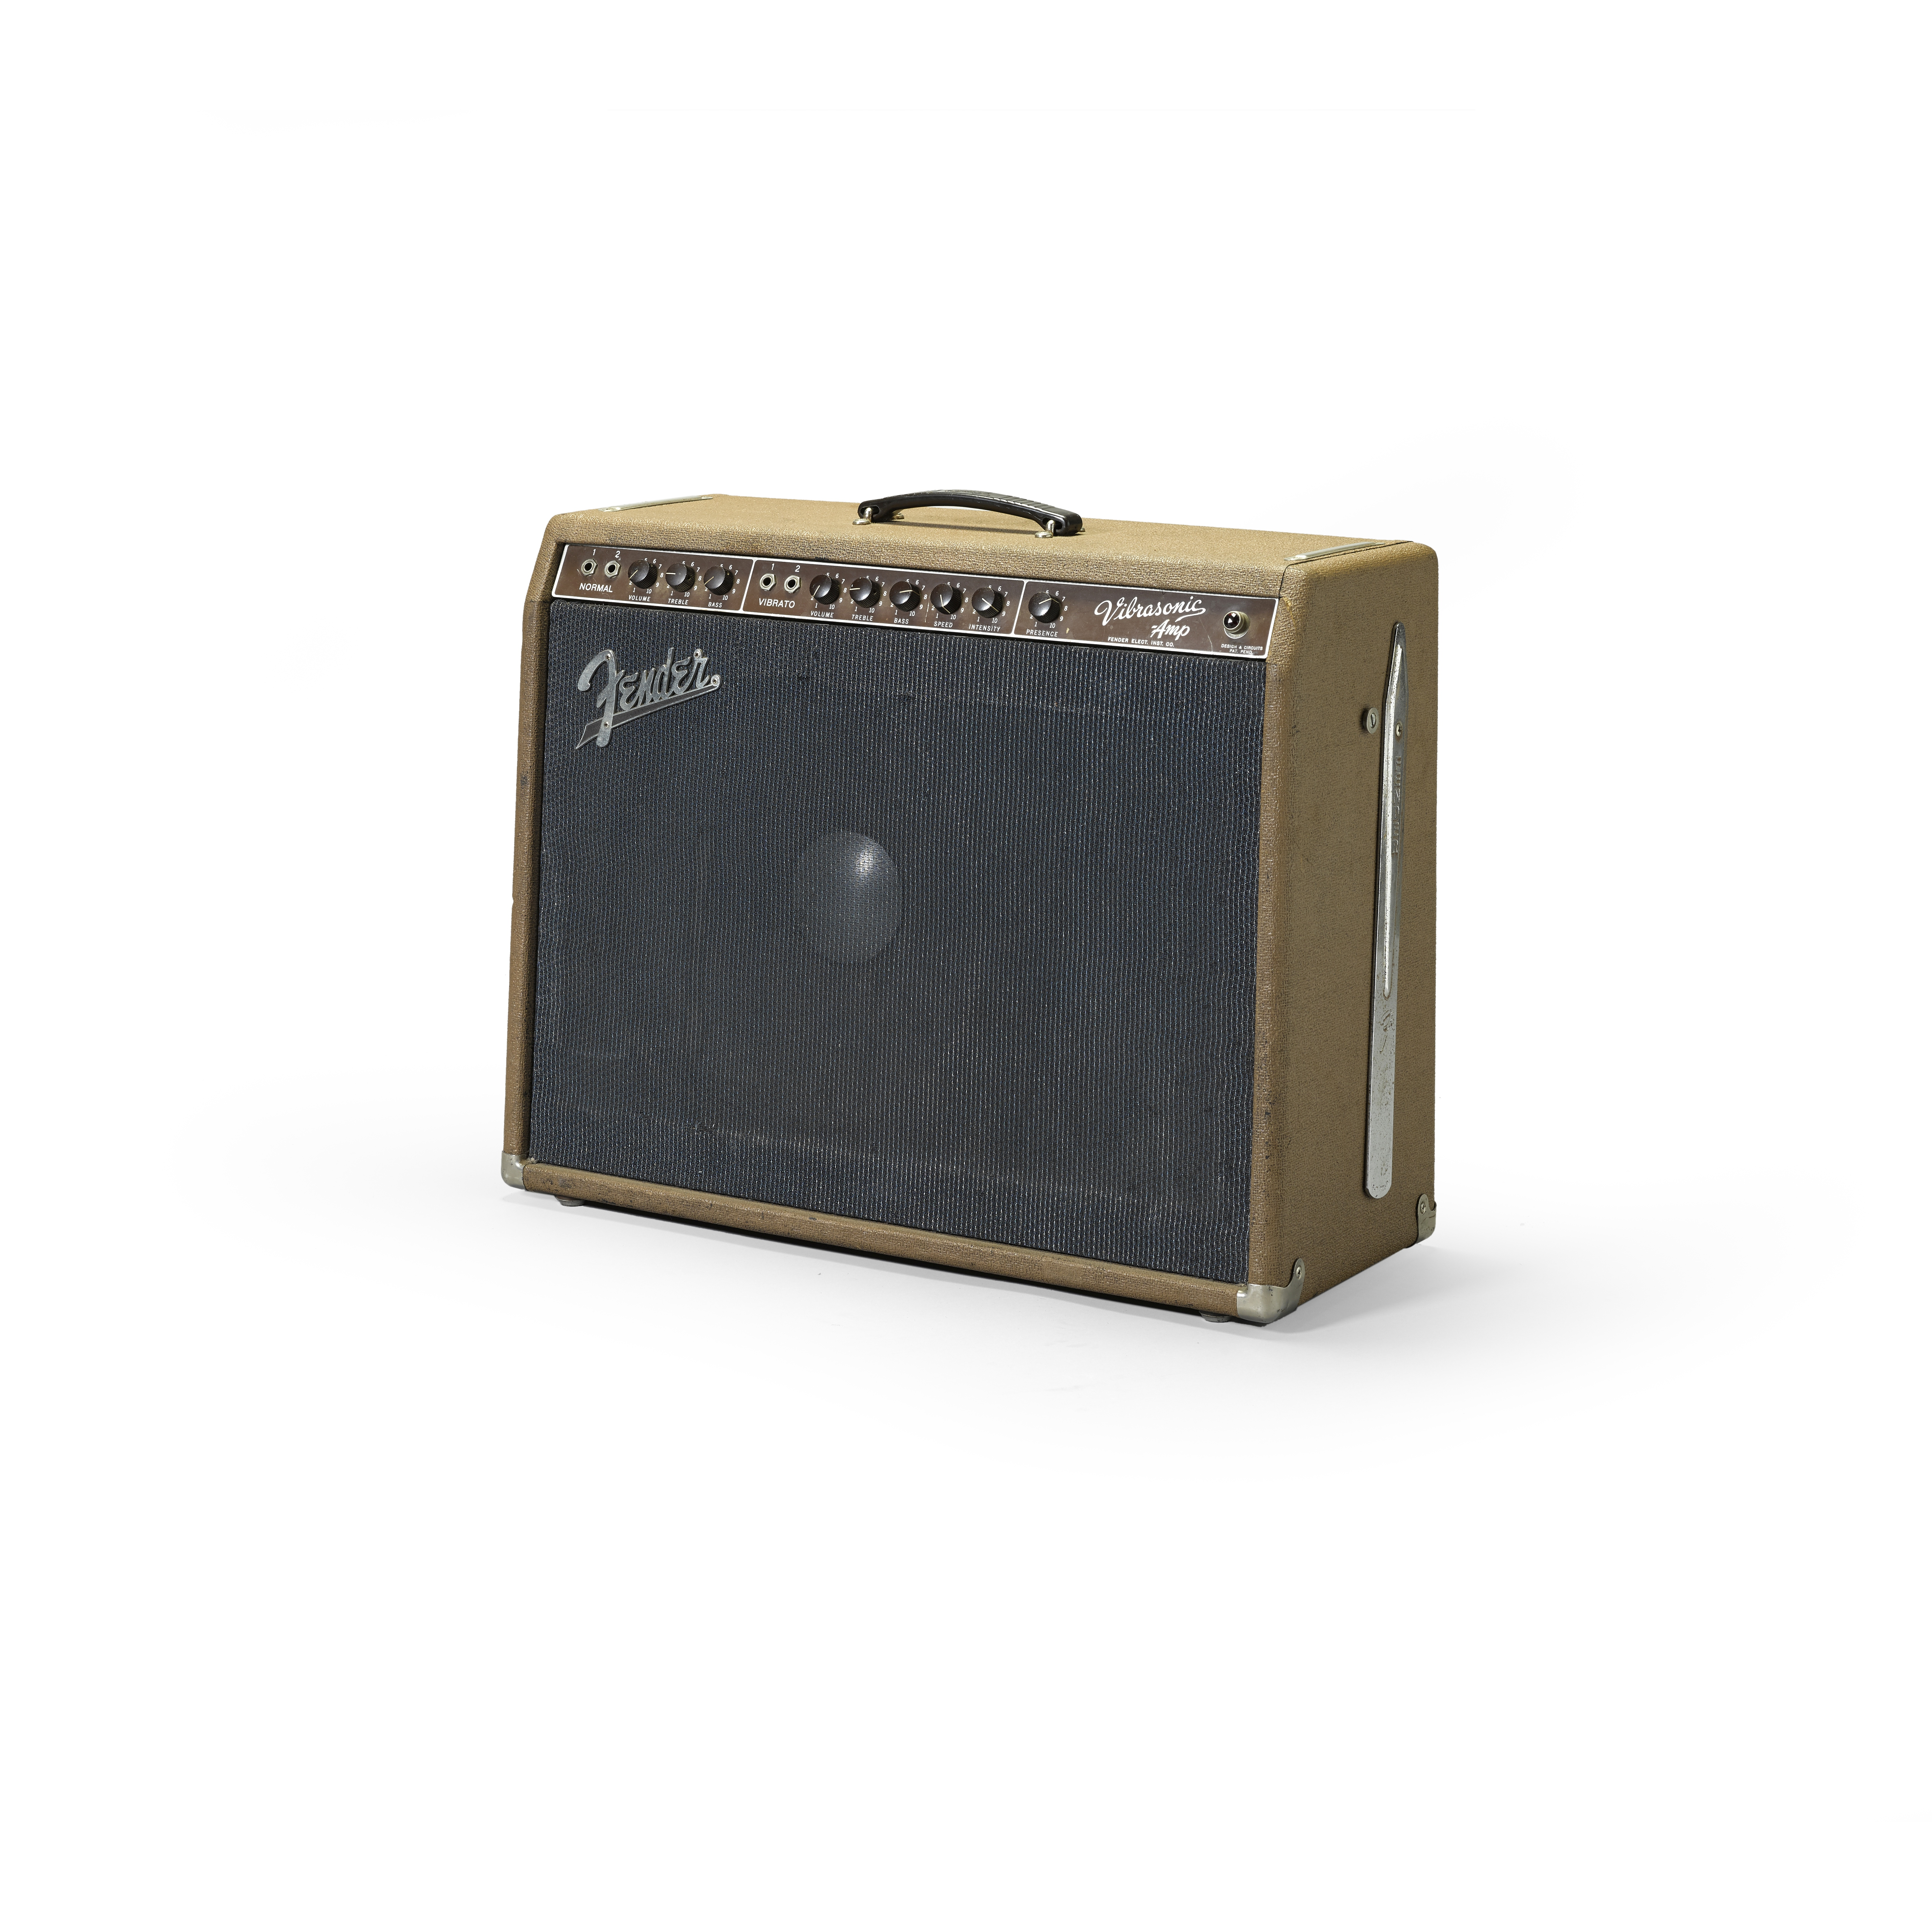 Lot 314 - A FENDER VIBRASONIC 6G13-A AMPLIFIER OWNED AND USED BY JERRY GARCIA